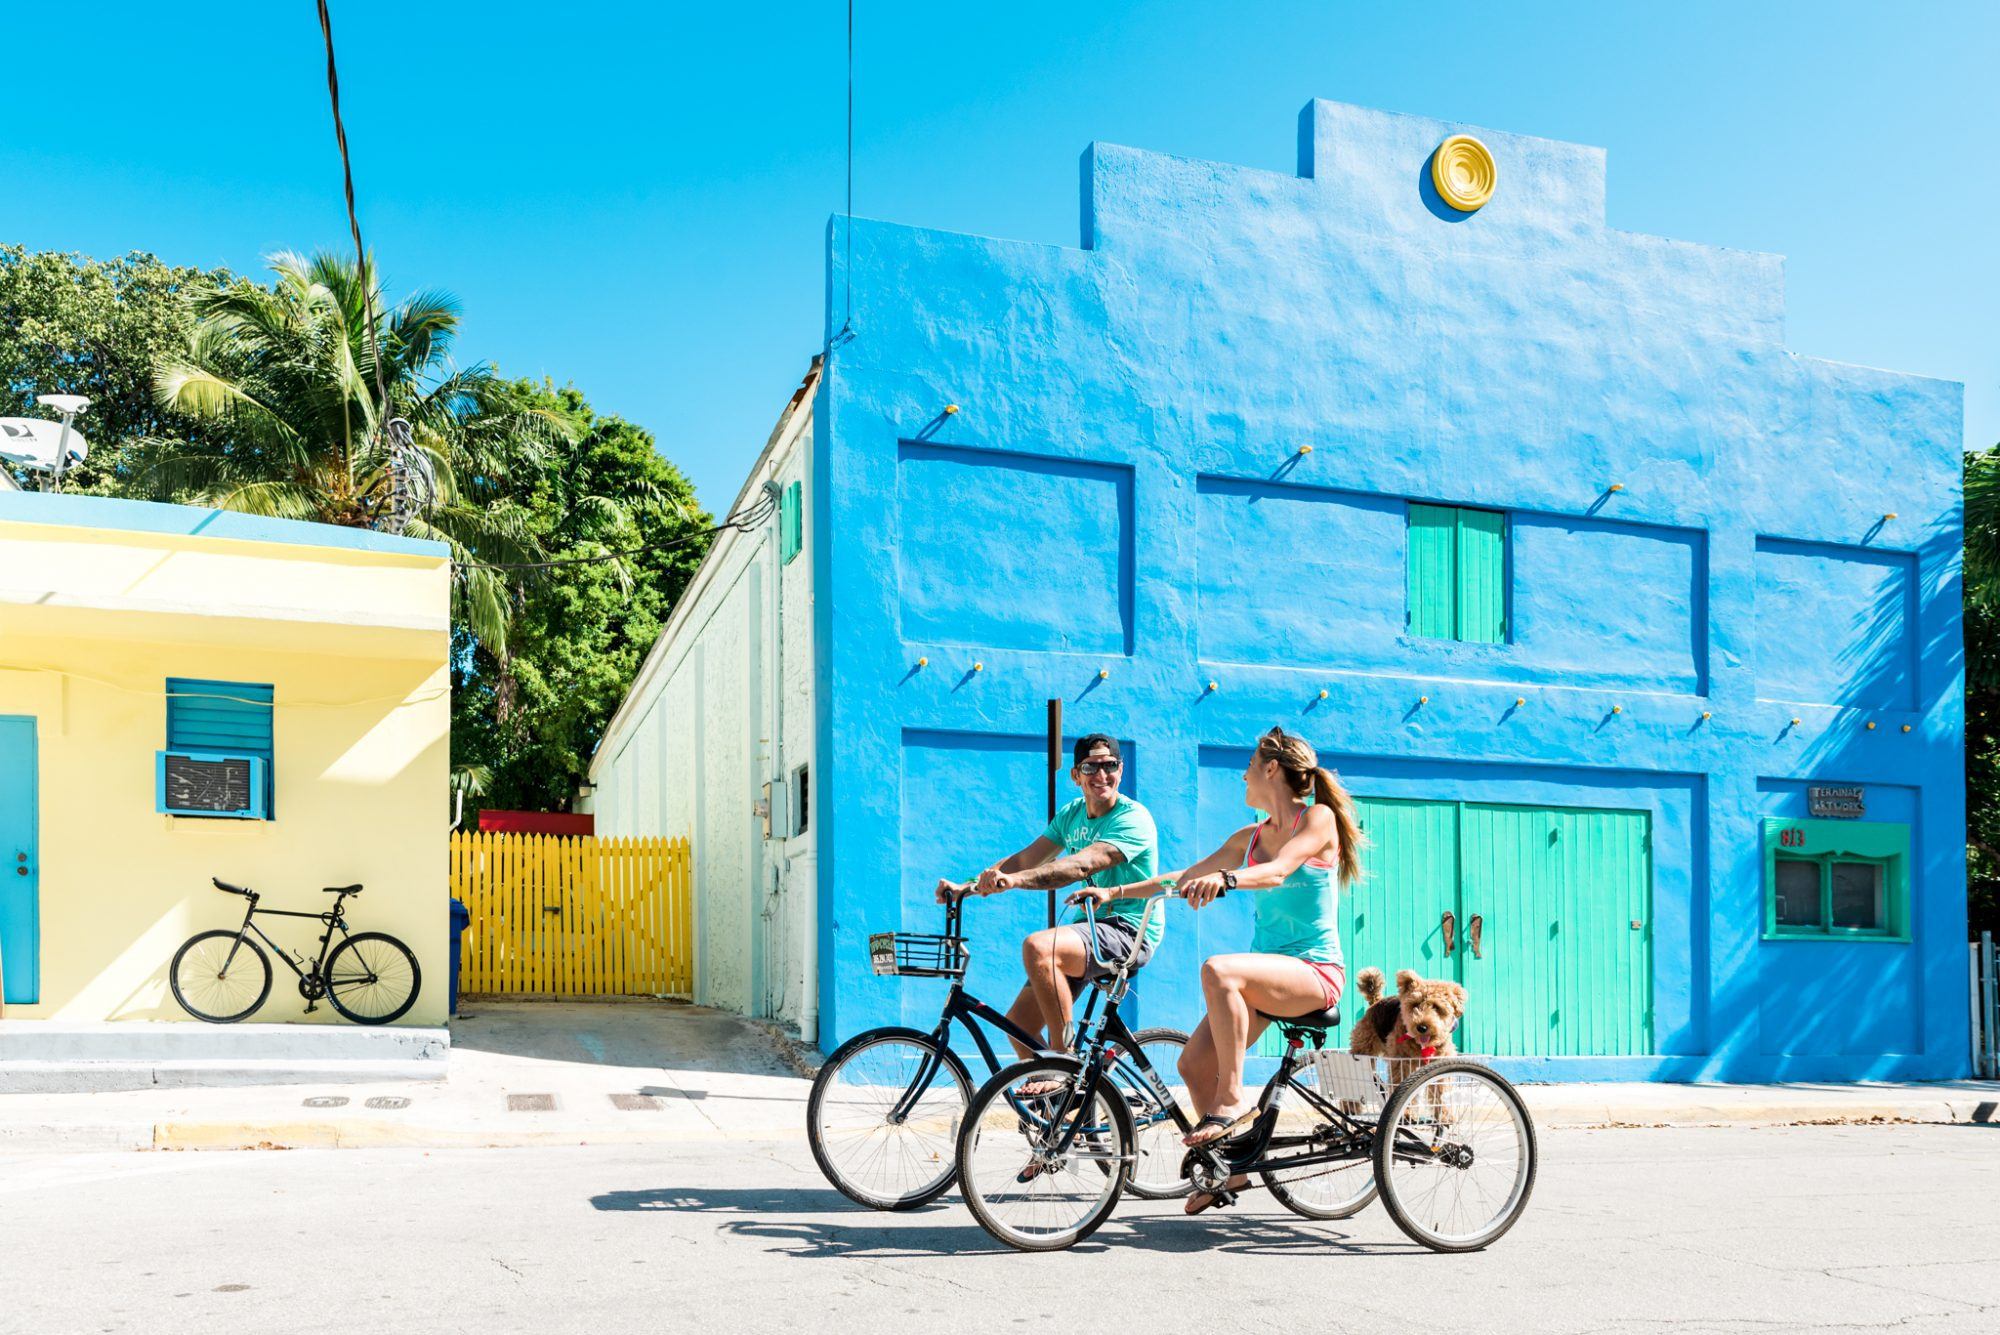 WeCycle Stock Photo 11 - Lifestyle Photography - The Florida Keys Way